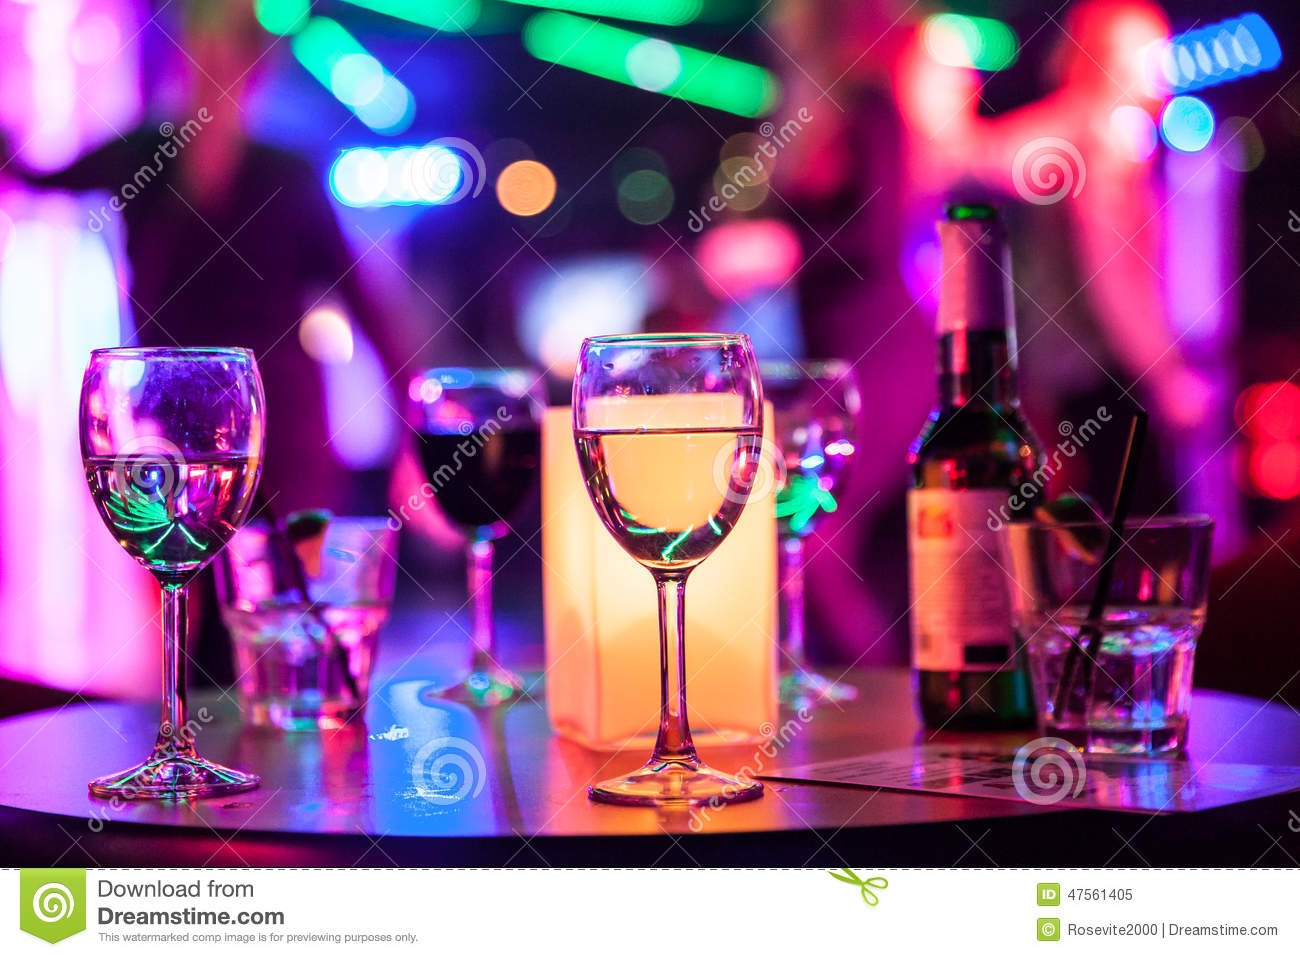 Alcoholic drinks on the table